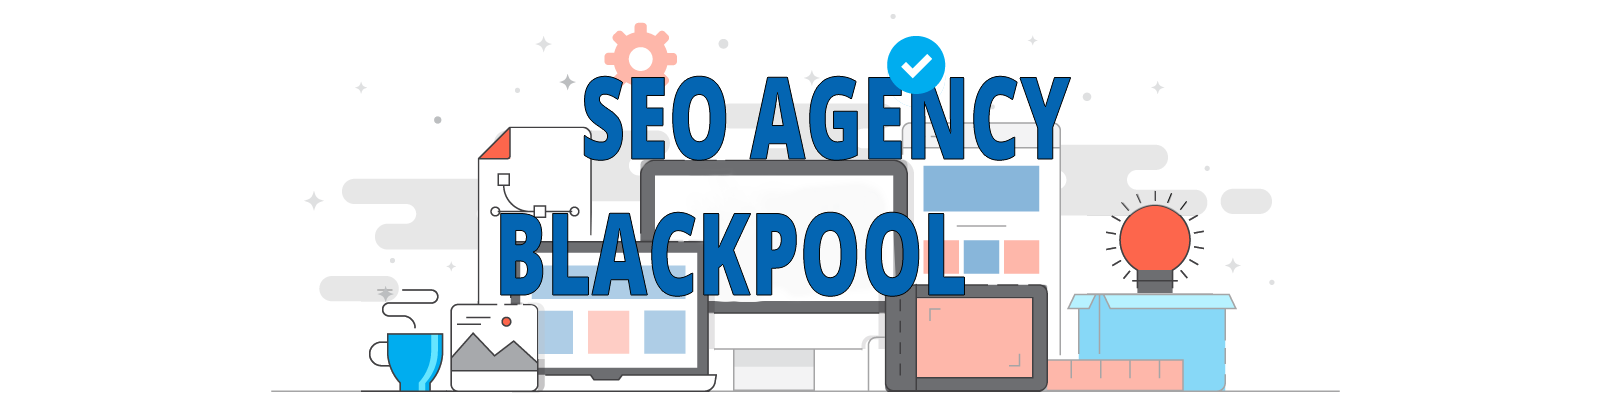 seo agency blackpool to increase organic traffic for wesite